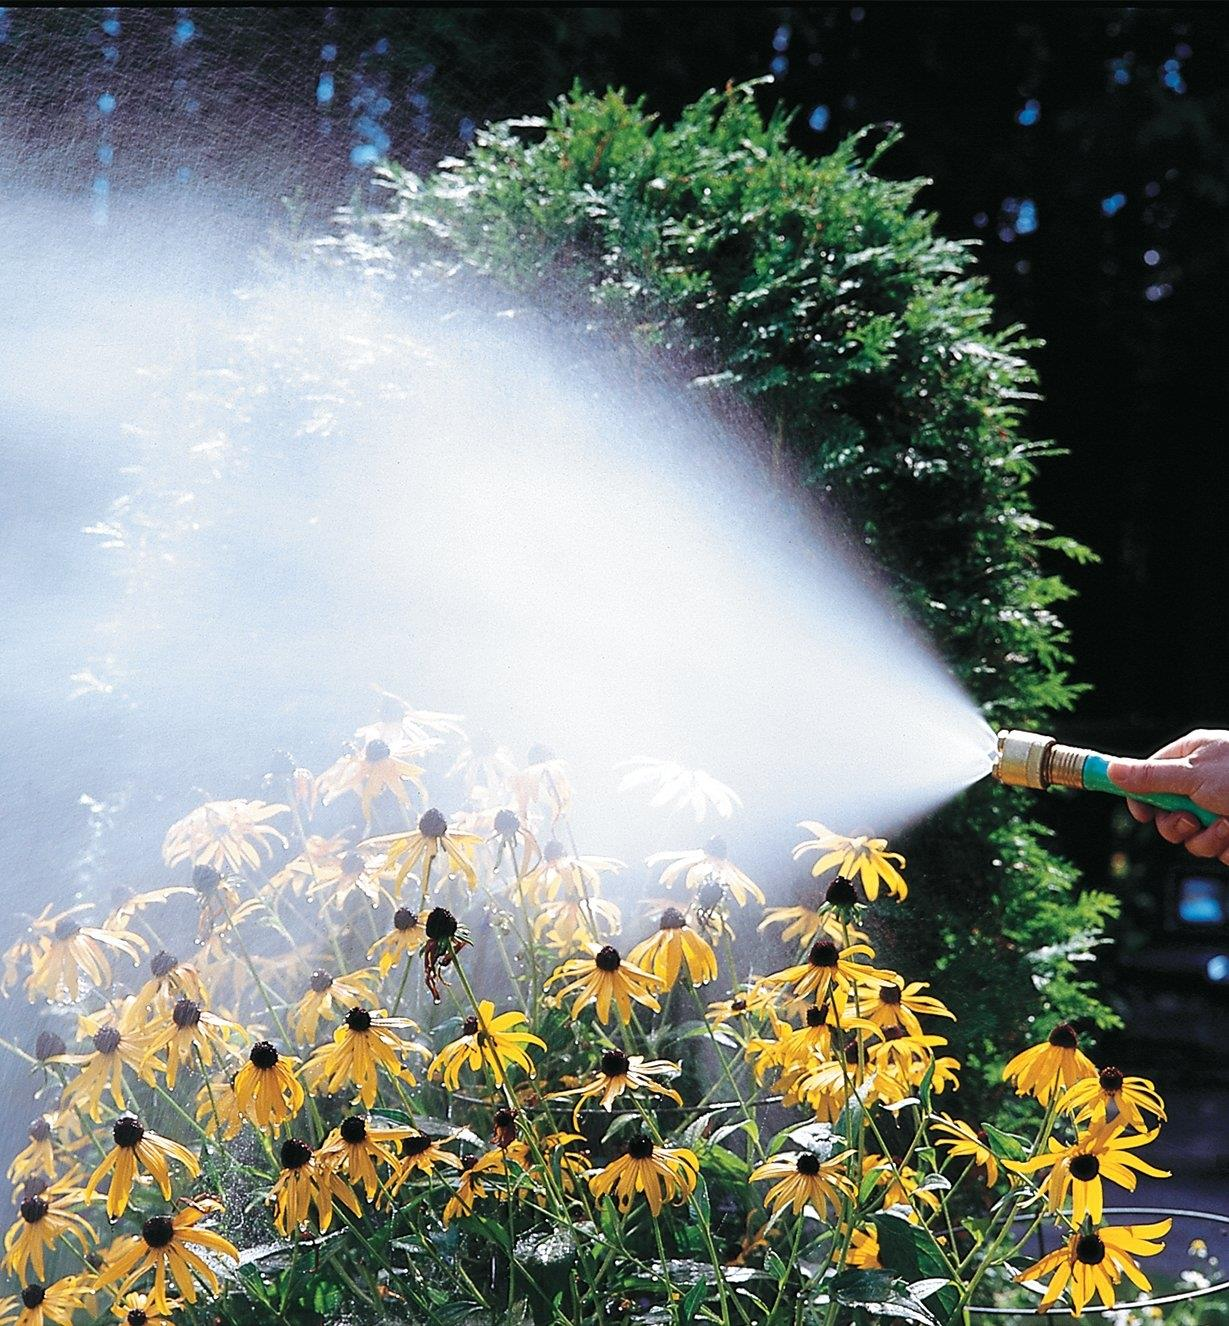 Watering flowers in a garden using the fogging nozzle